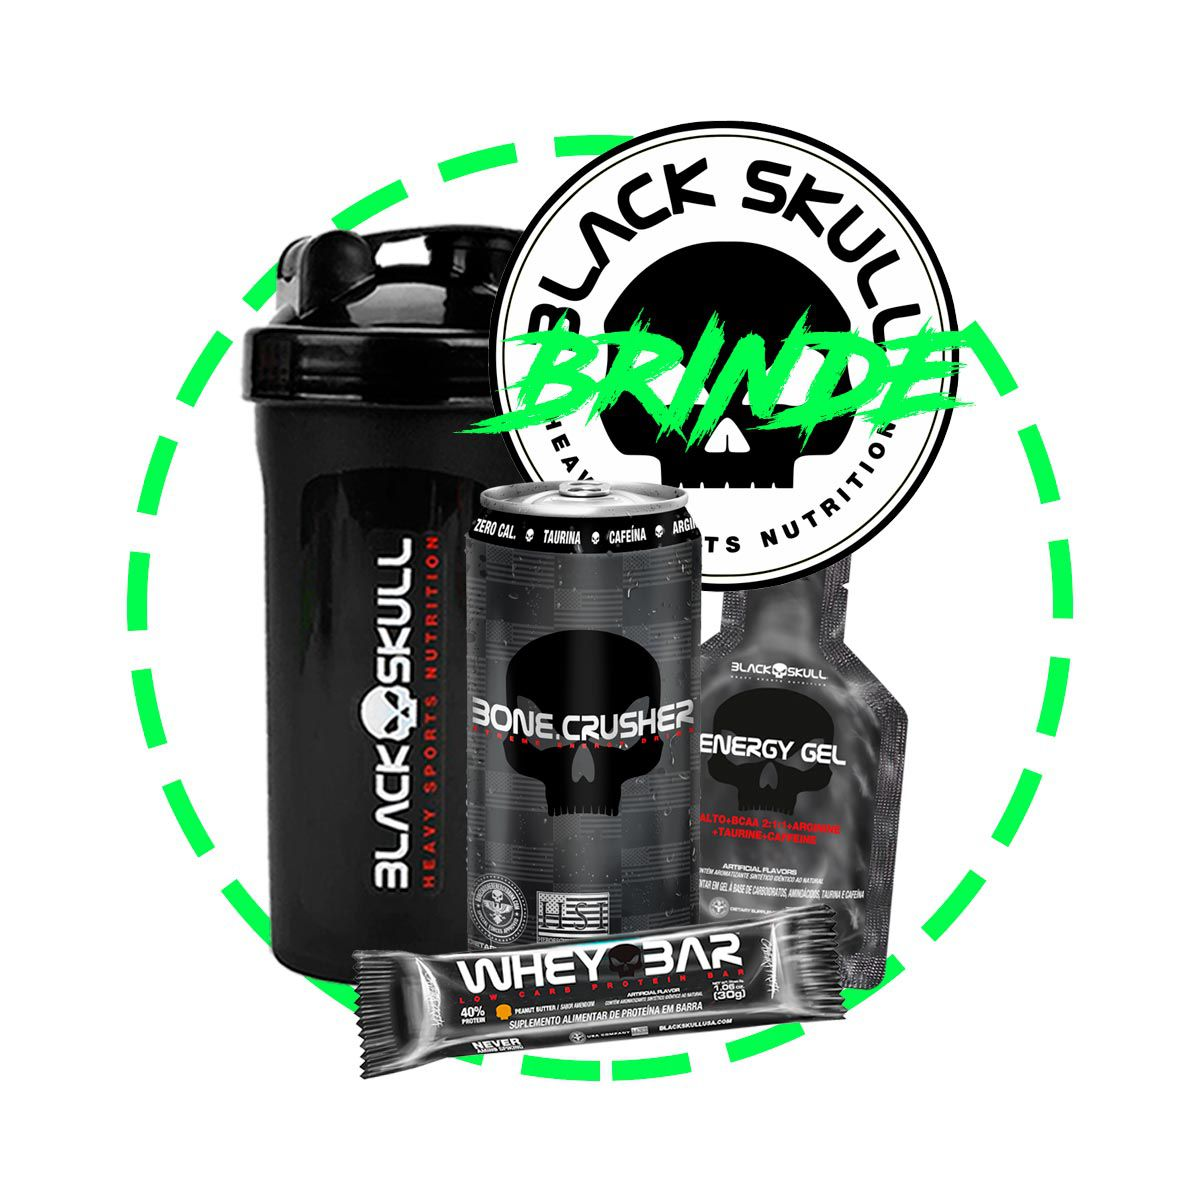 Kit Ganha de Massa Muscular Whey 3HD Black Skull + Brindes